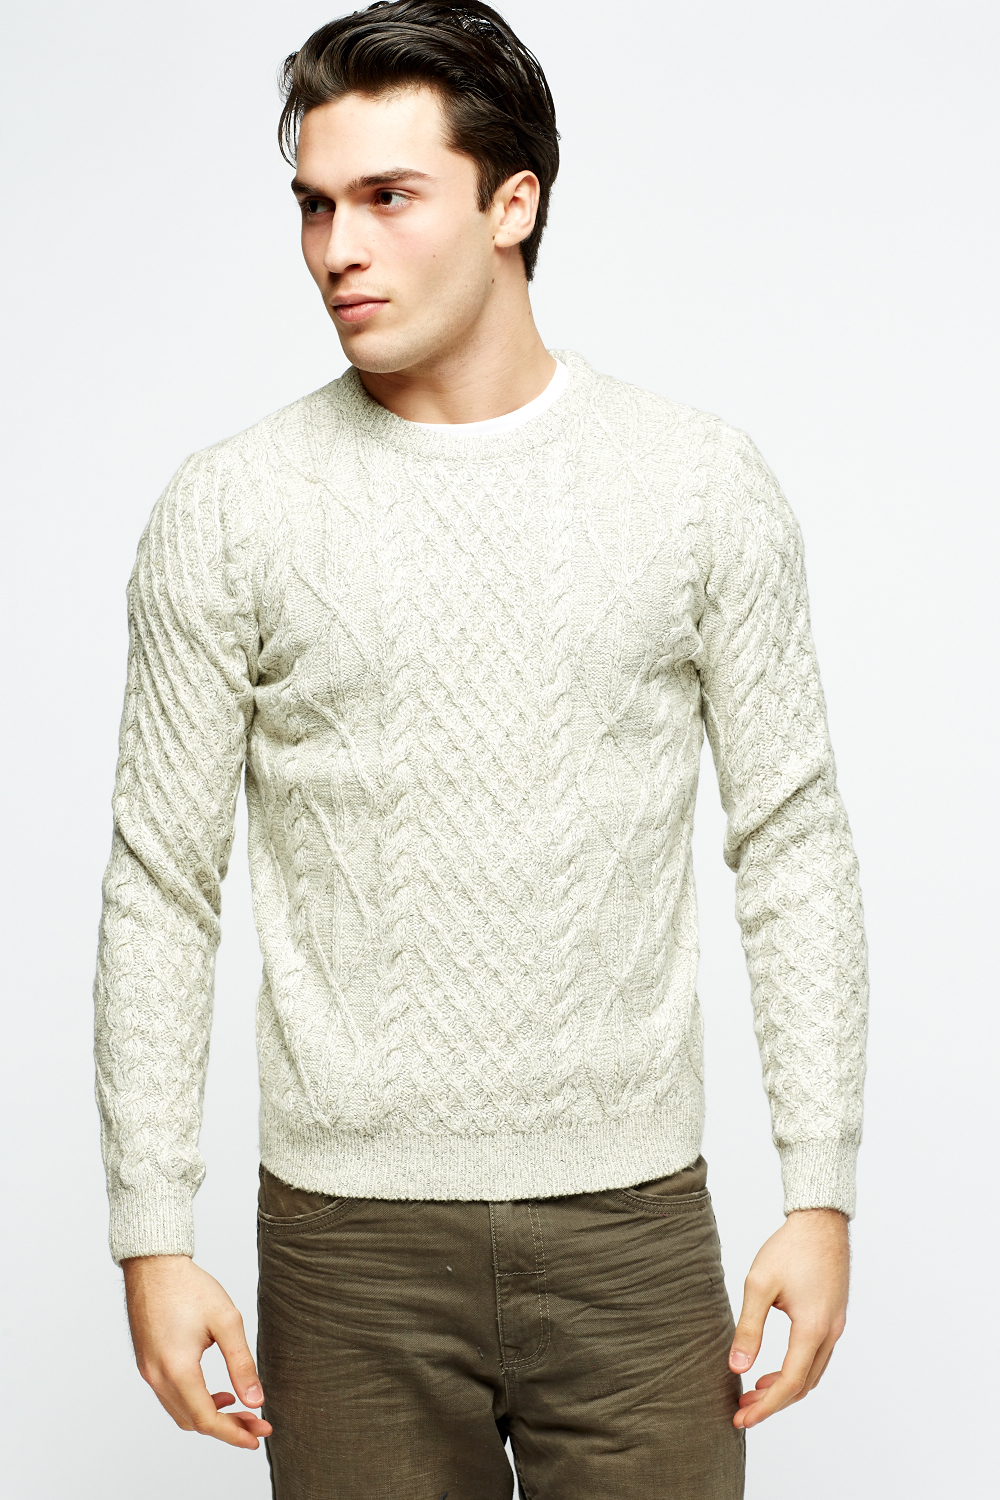 Knitting for men is a popular topic, and because we live to serve, we thought we'd gather our favorite men's sweater patterns and package them up into a lovely collection: 7 FREE Knitting Patterns for Men.